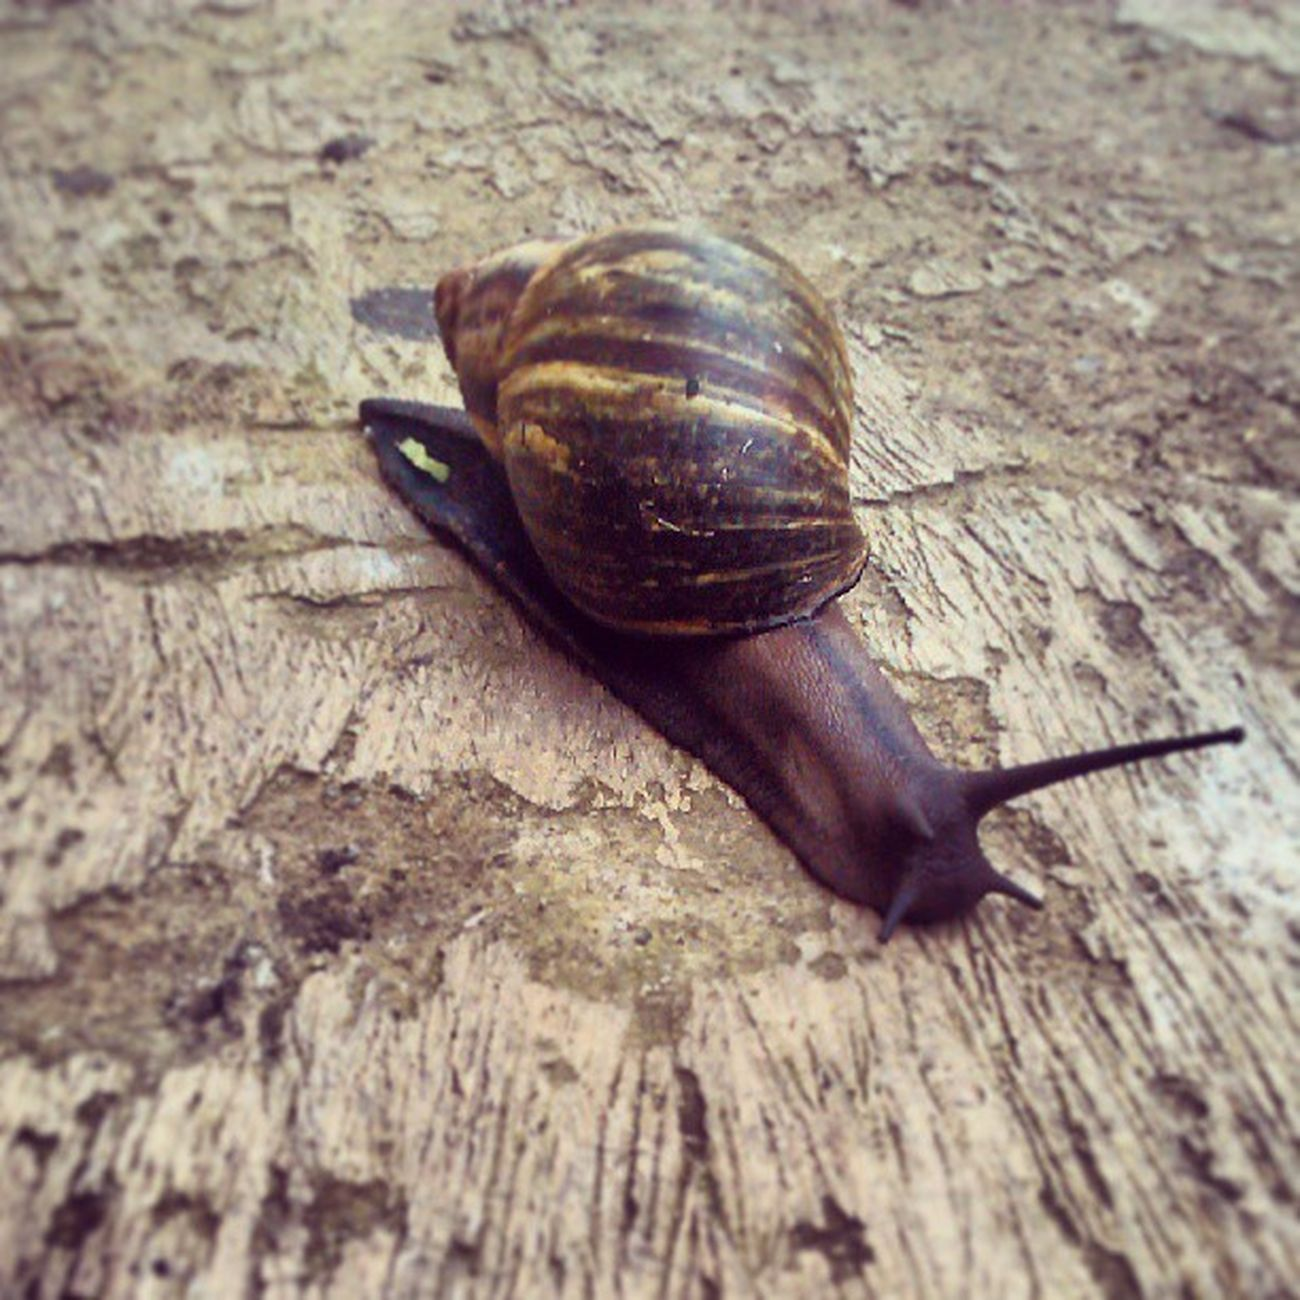 Coming from the KINGDOM Animalia , Phylum Mollusca and Class Gastropoda , Meet Mr. Snail... Sciencewednesday Biology